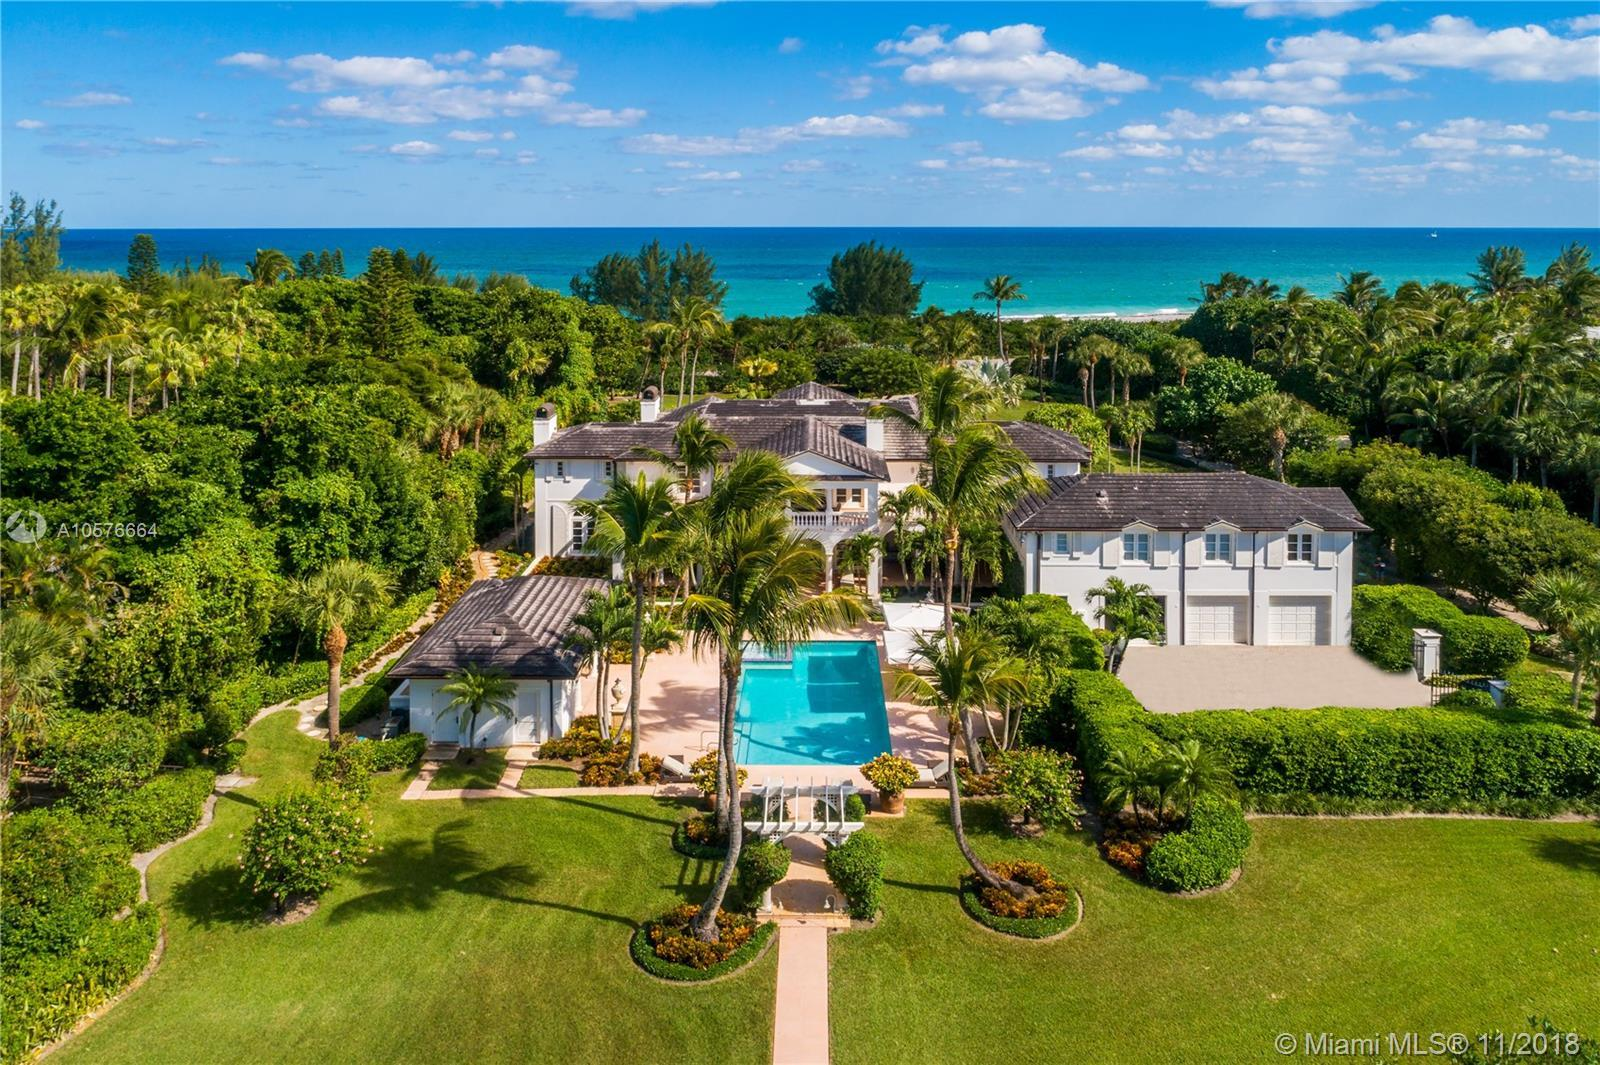 Sophisticated elegance on the Exclusive enclave of Jupiter Island. Gorgeous custom built home concea